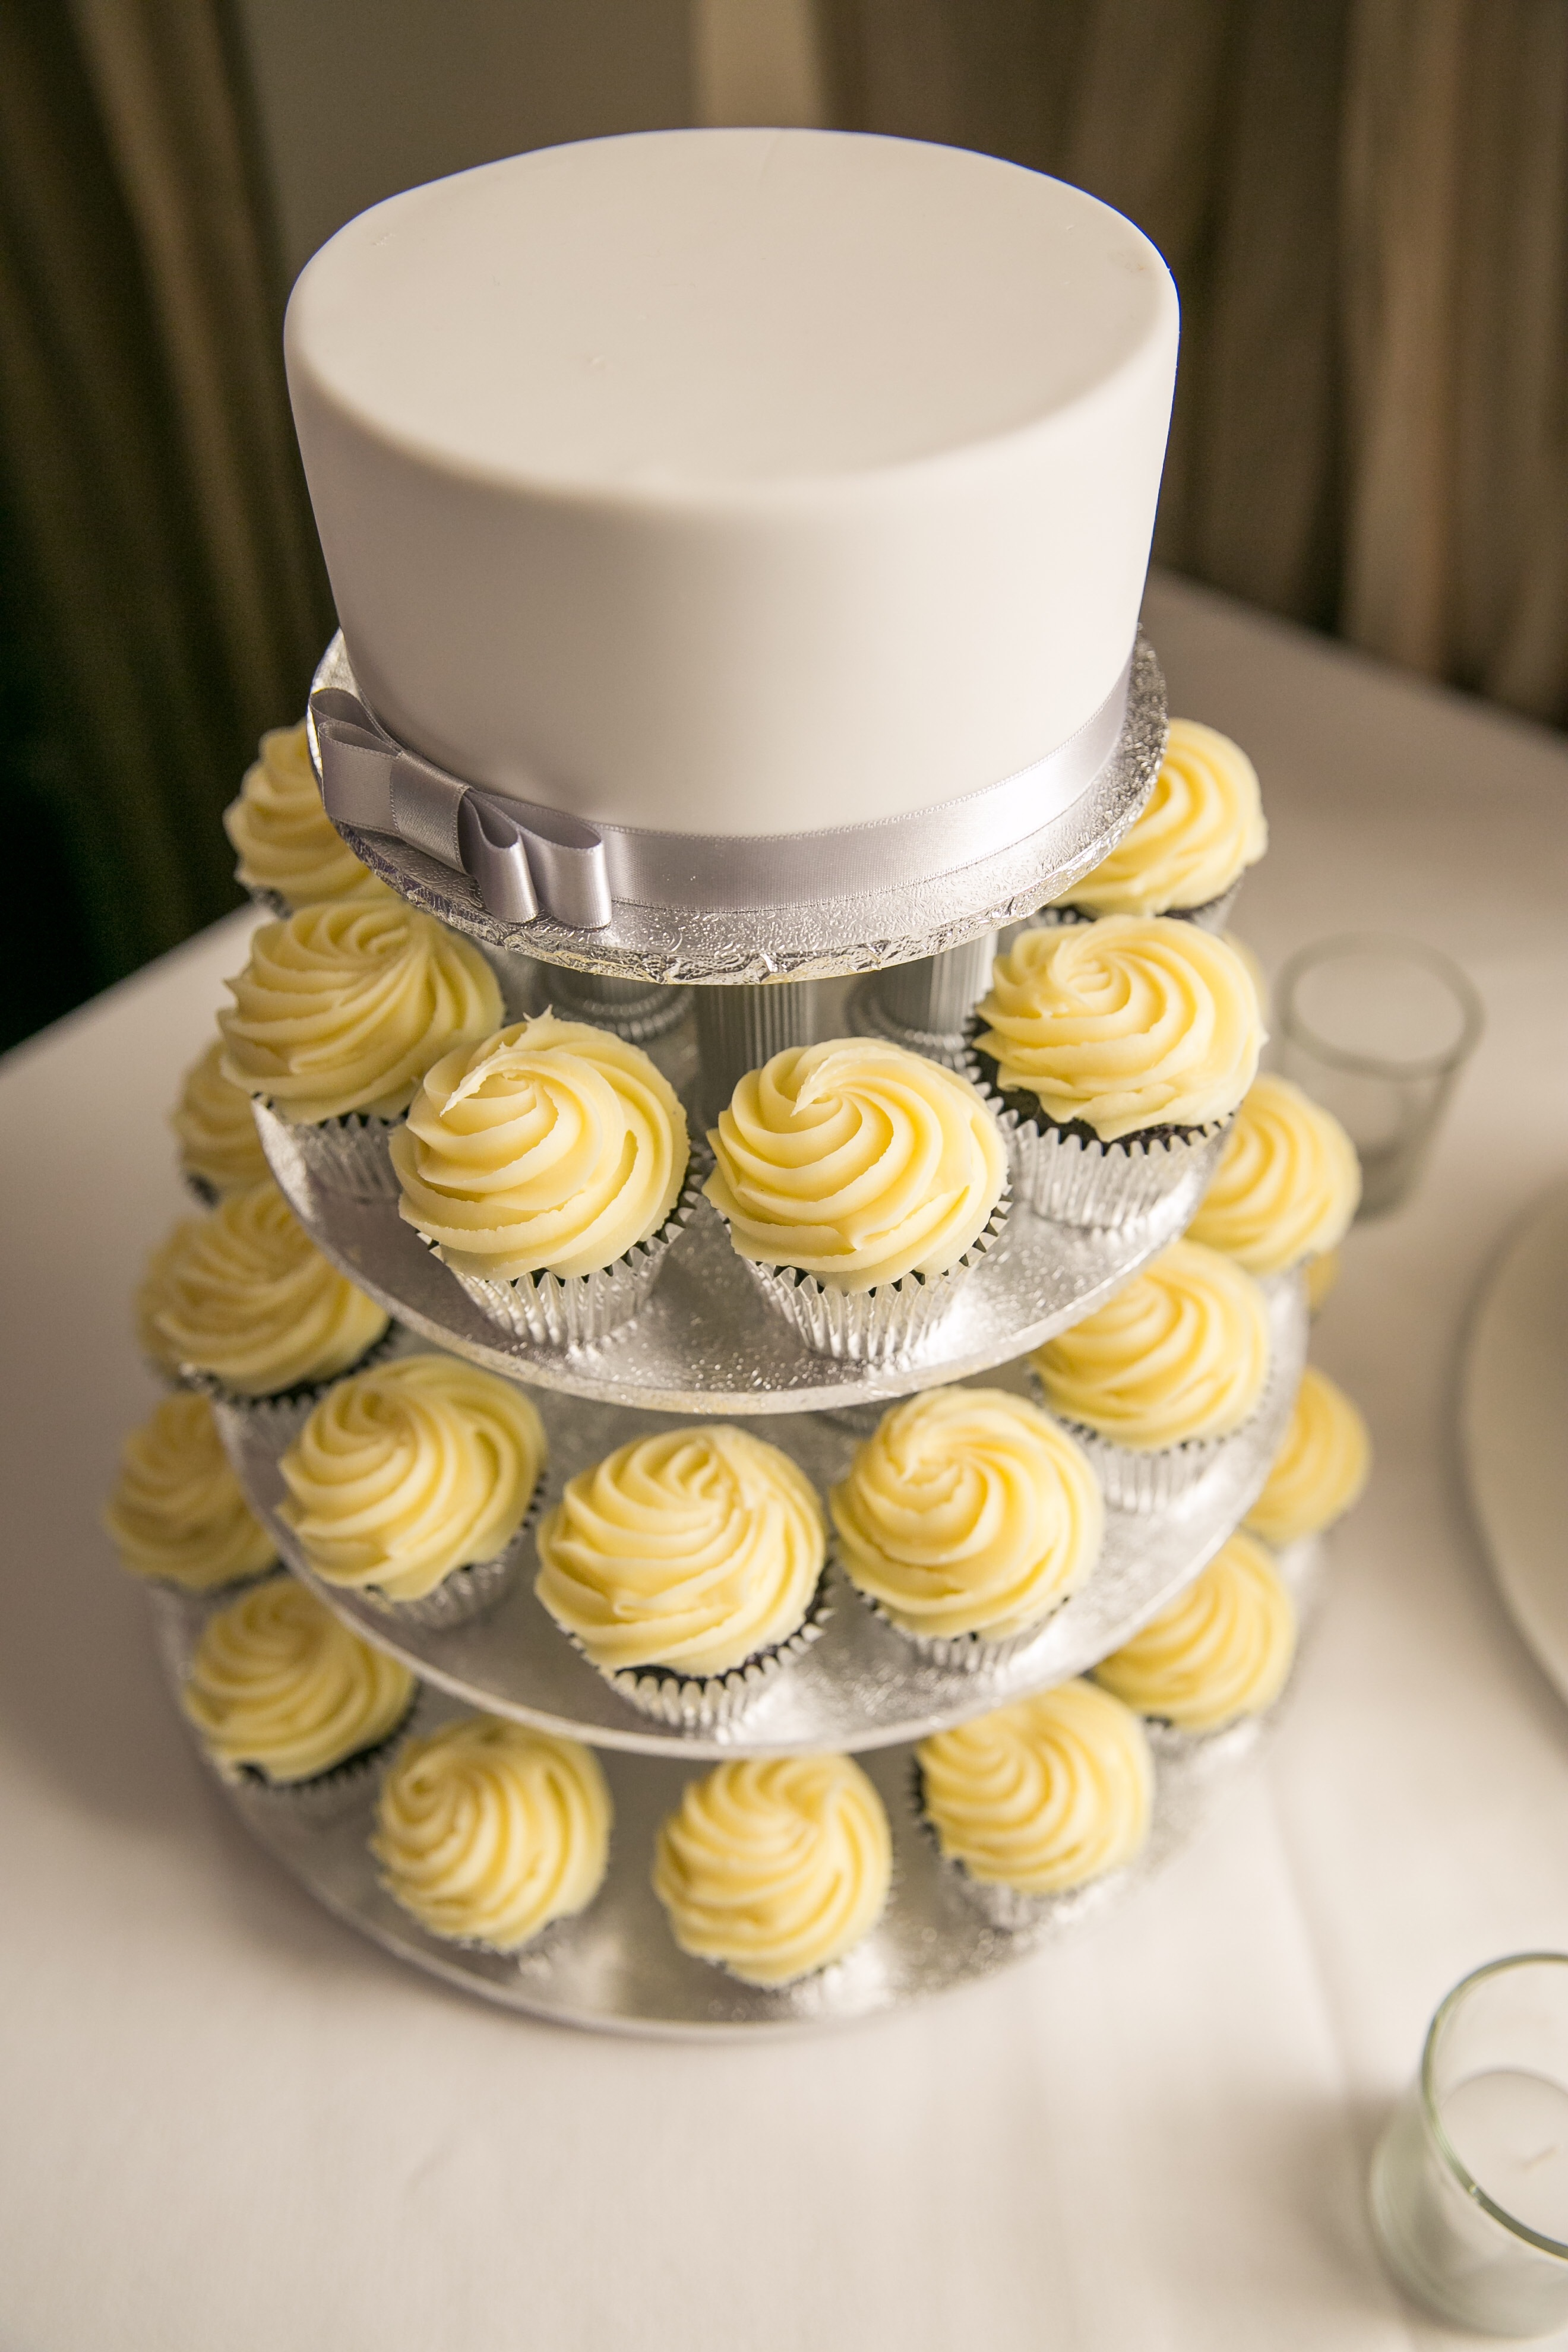 Modern wedding cakes for the holiday  Cost of wedding cakes in     Cost of wedding cakes in johannesburg